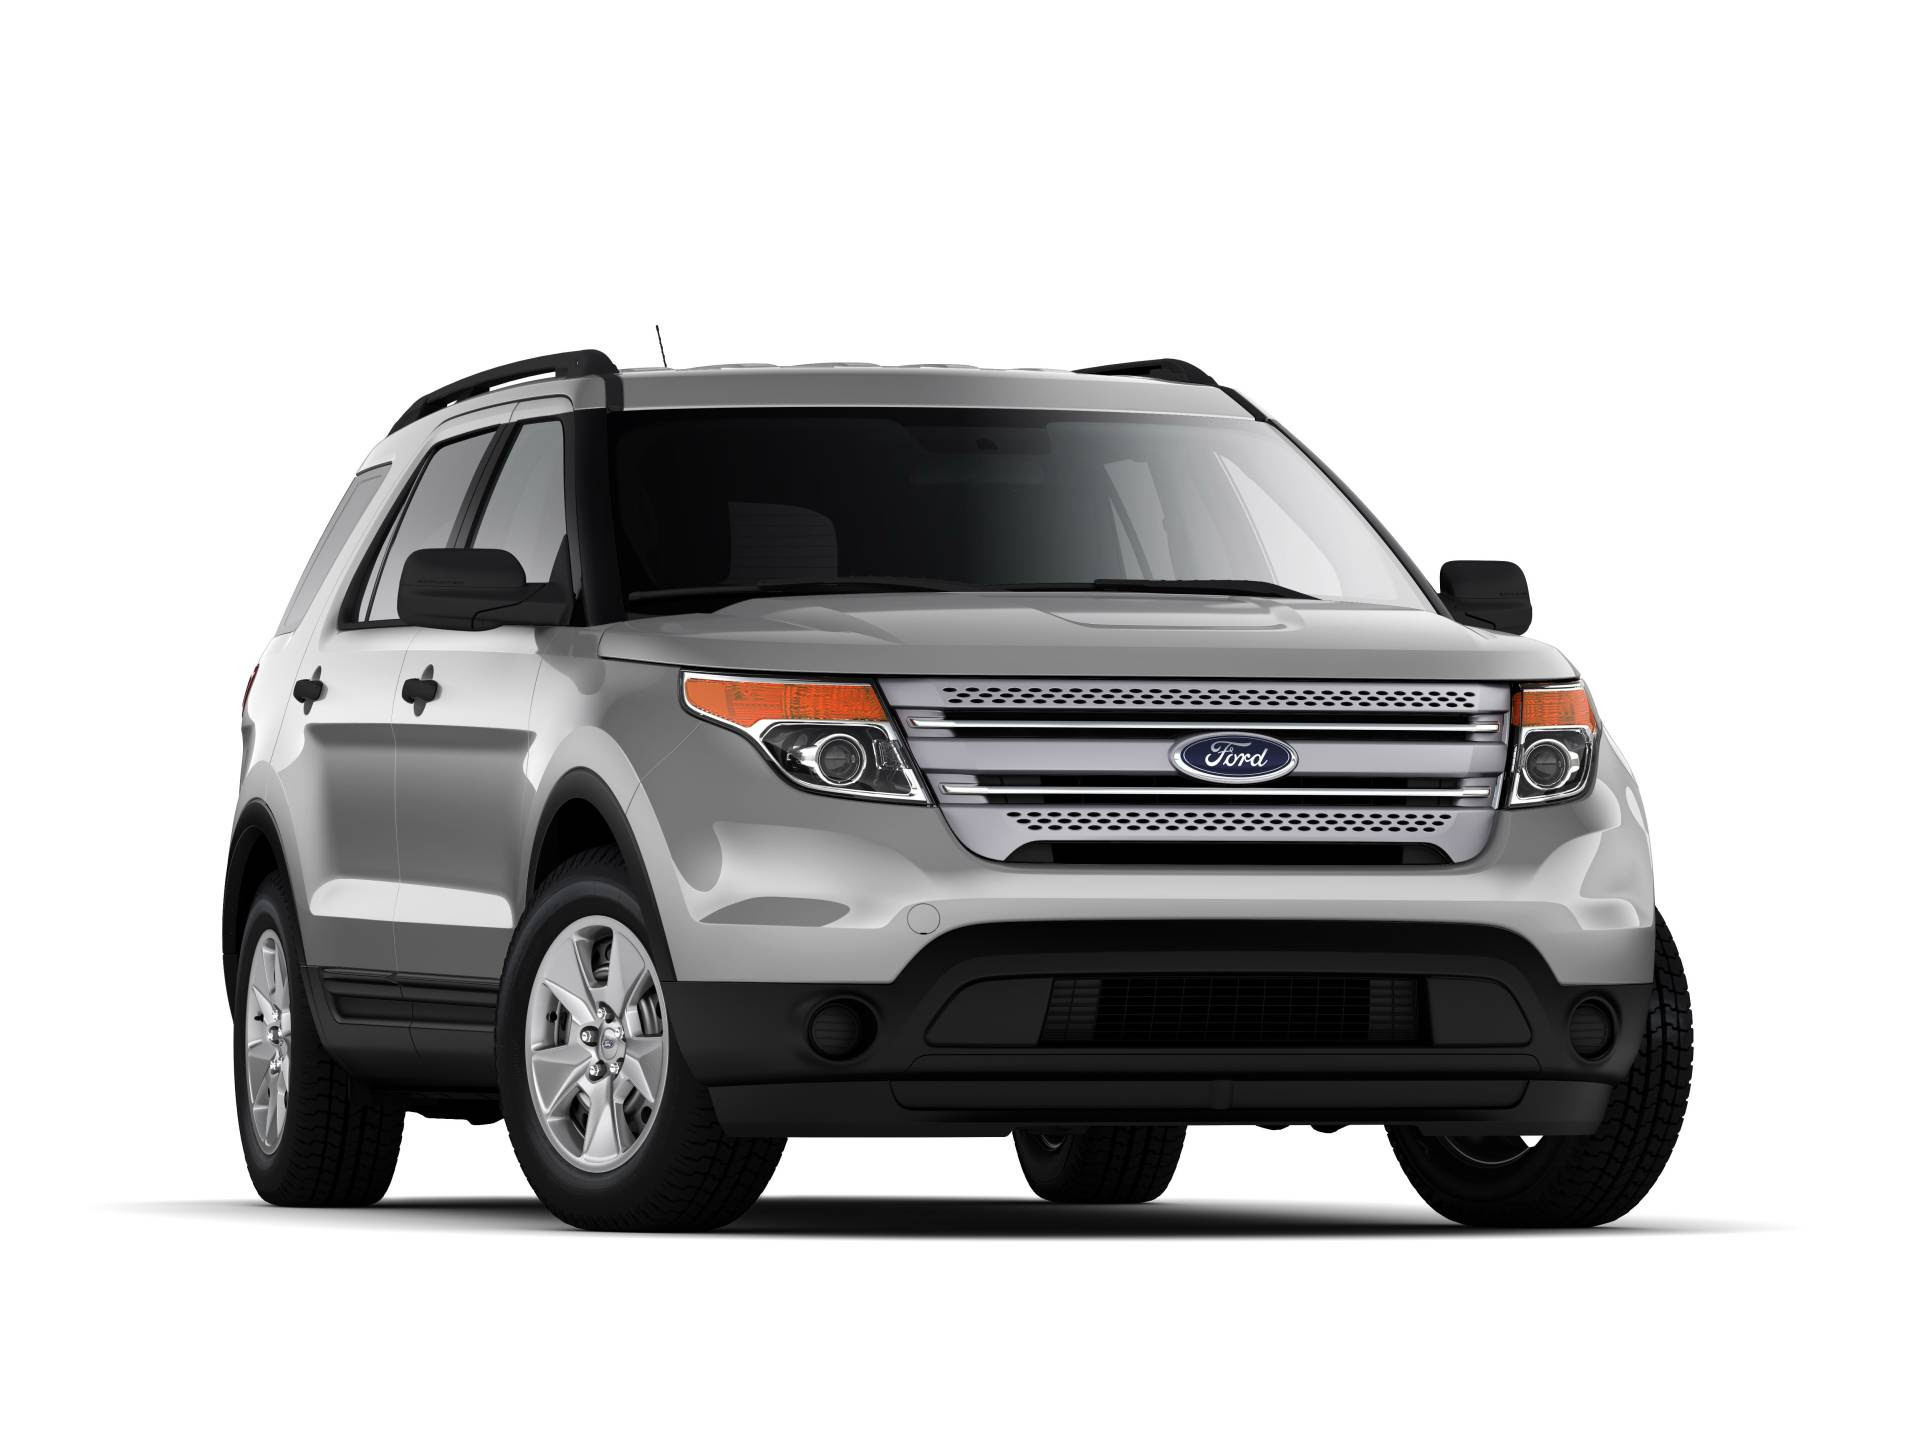 2013 Ford Explorer - conceptcarz.com